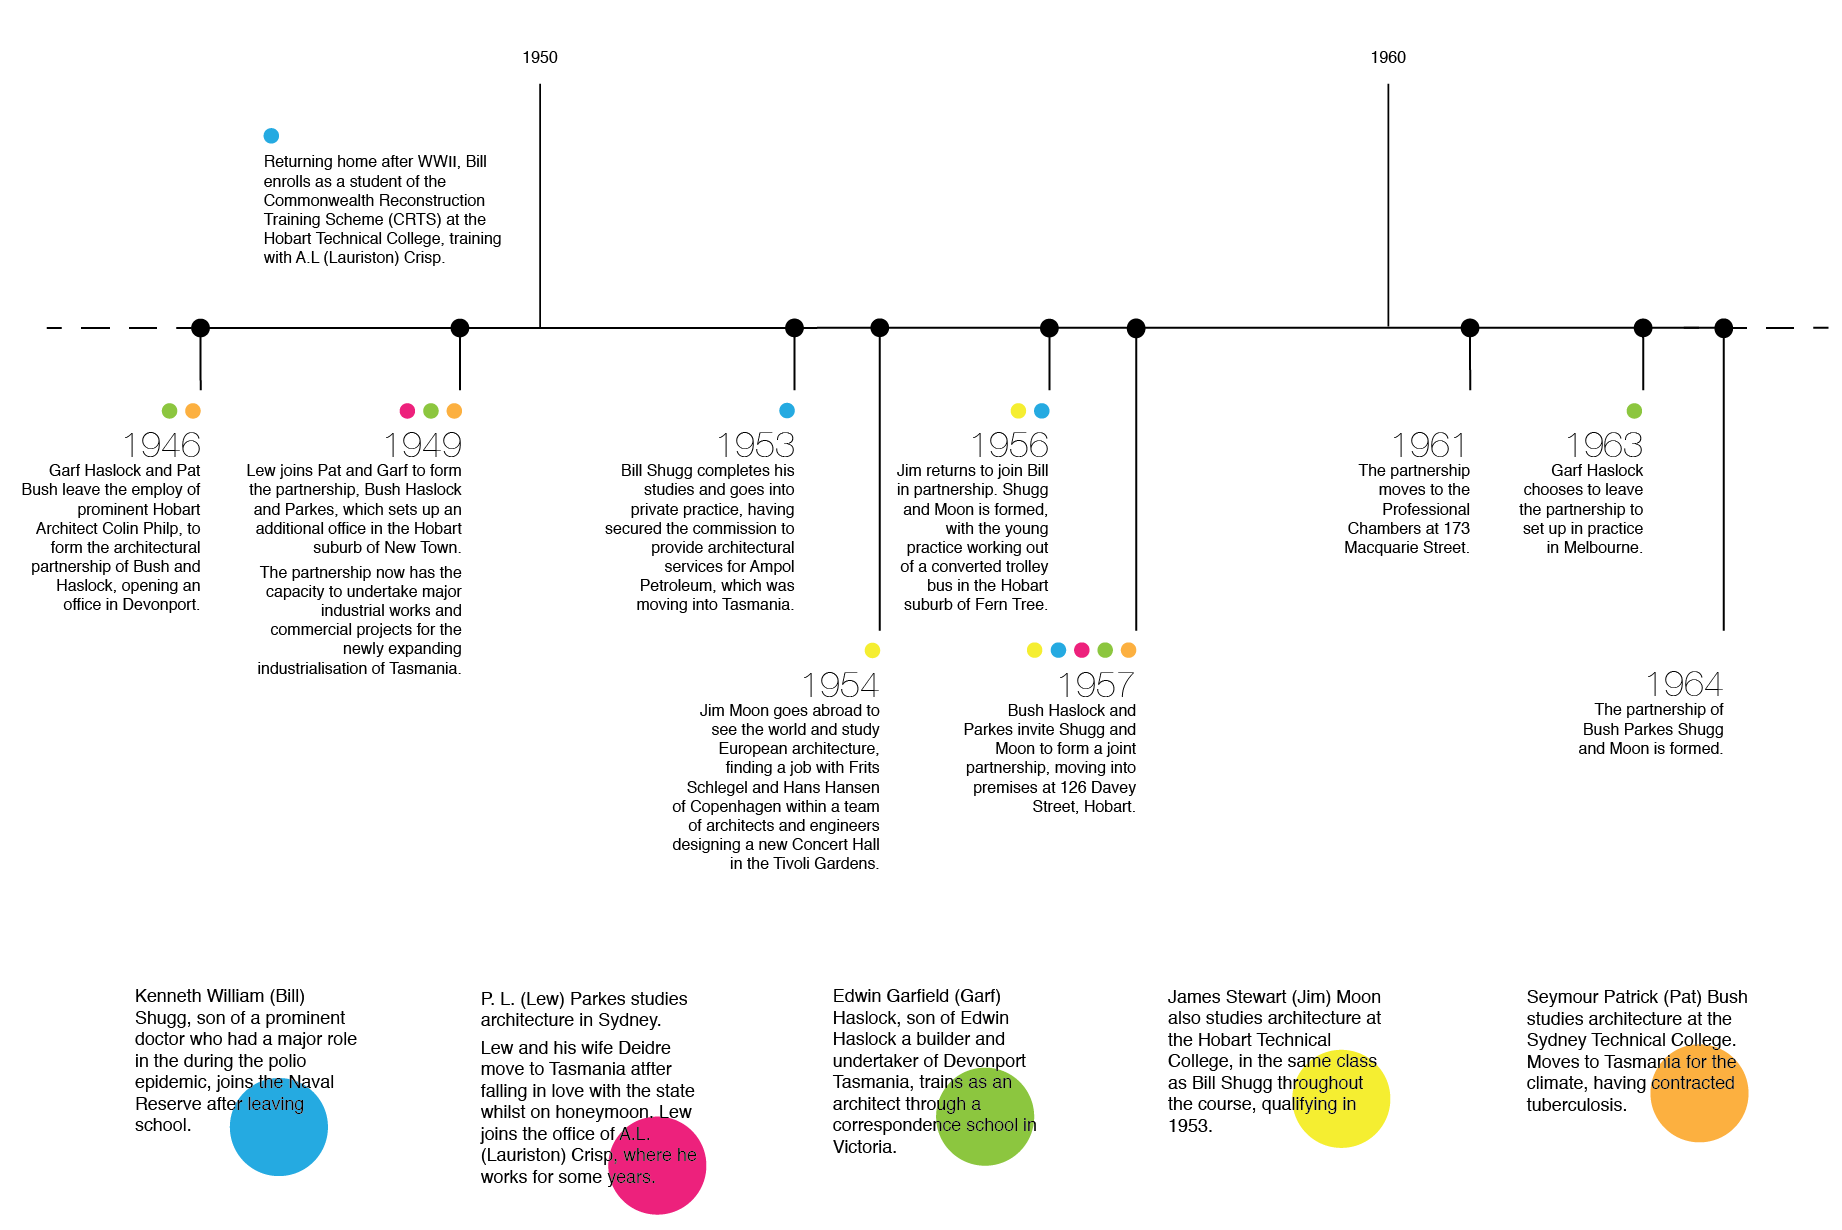 BPSM Architects' early beginnings timeline